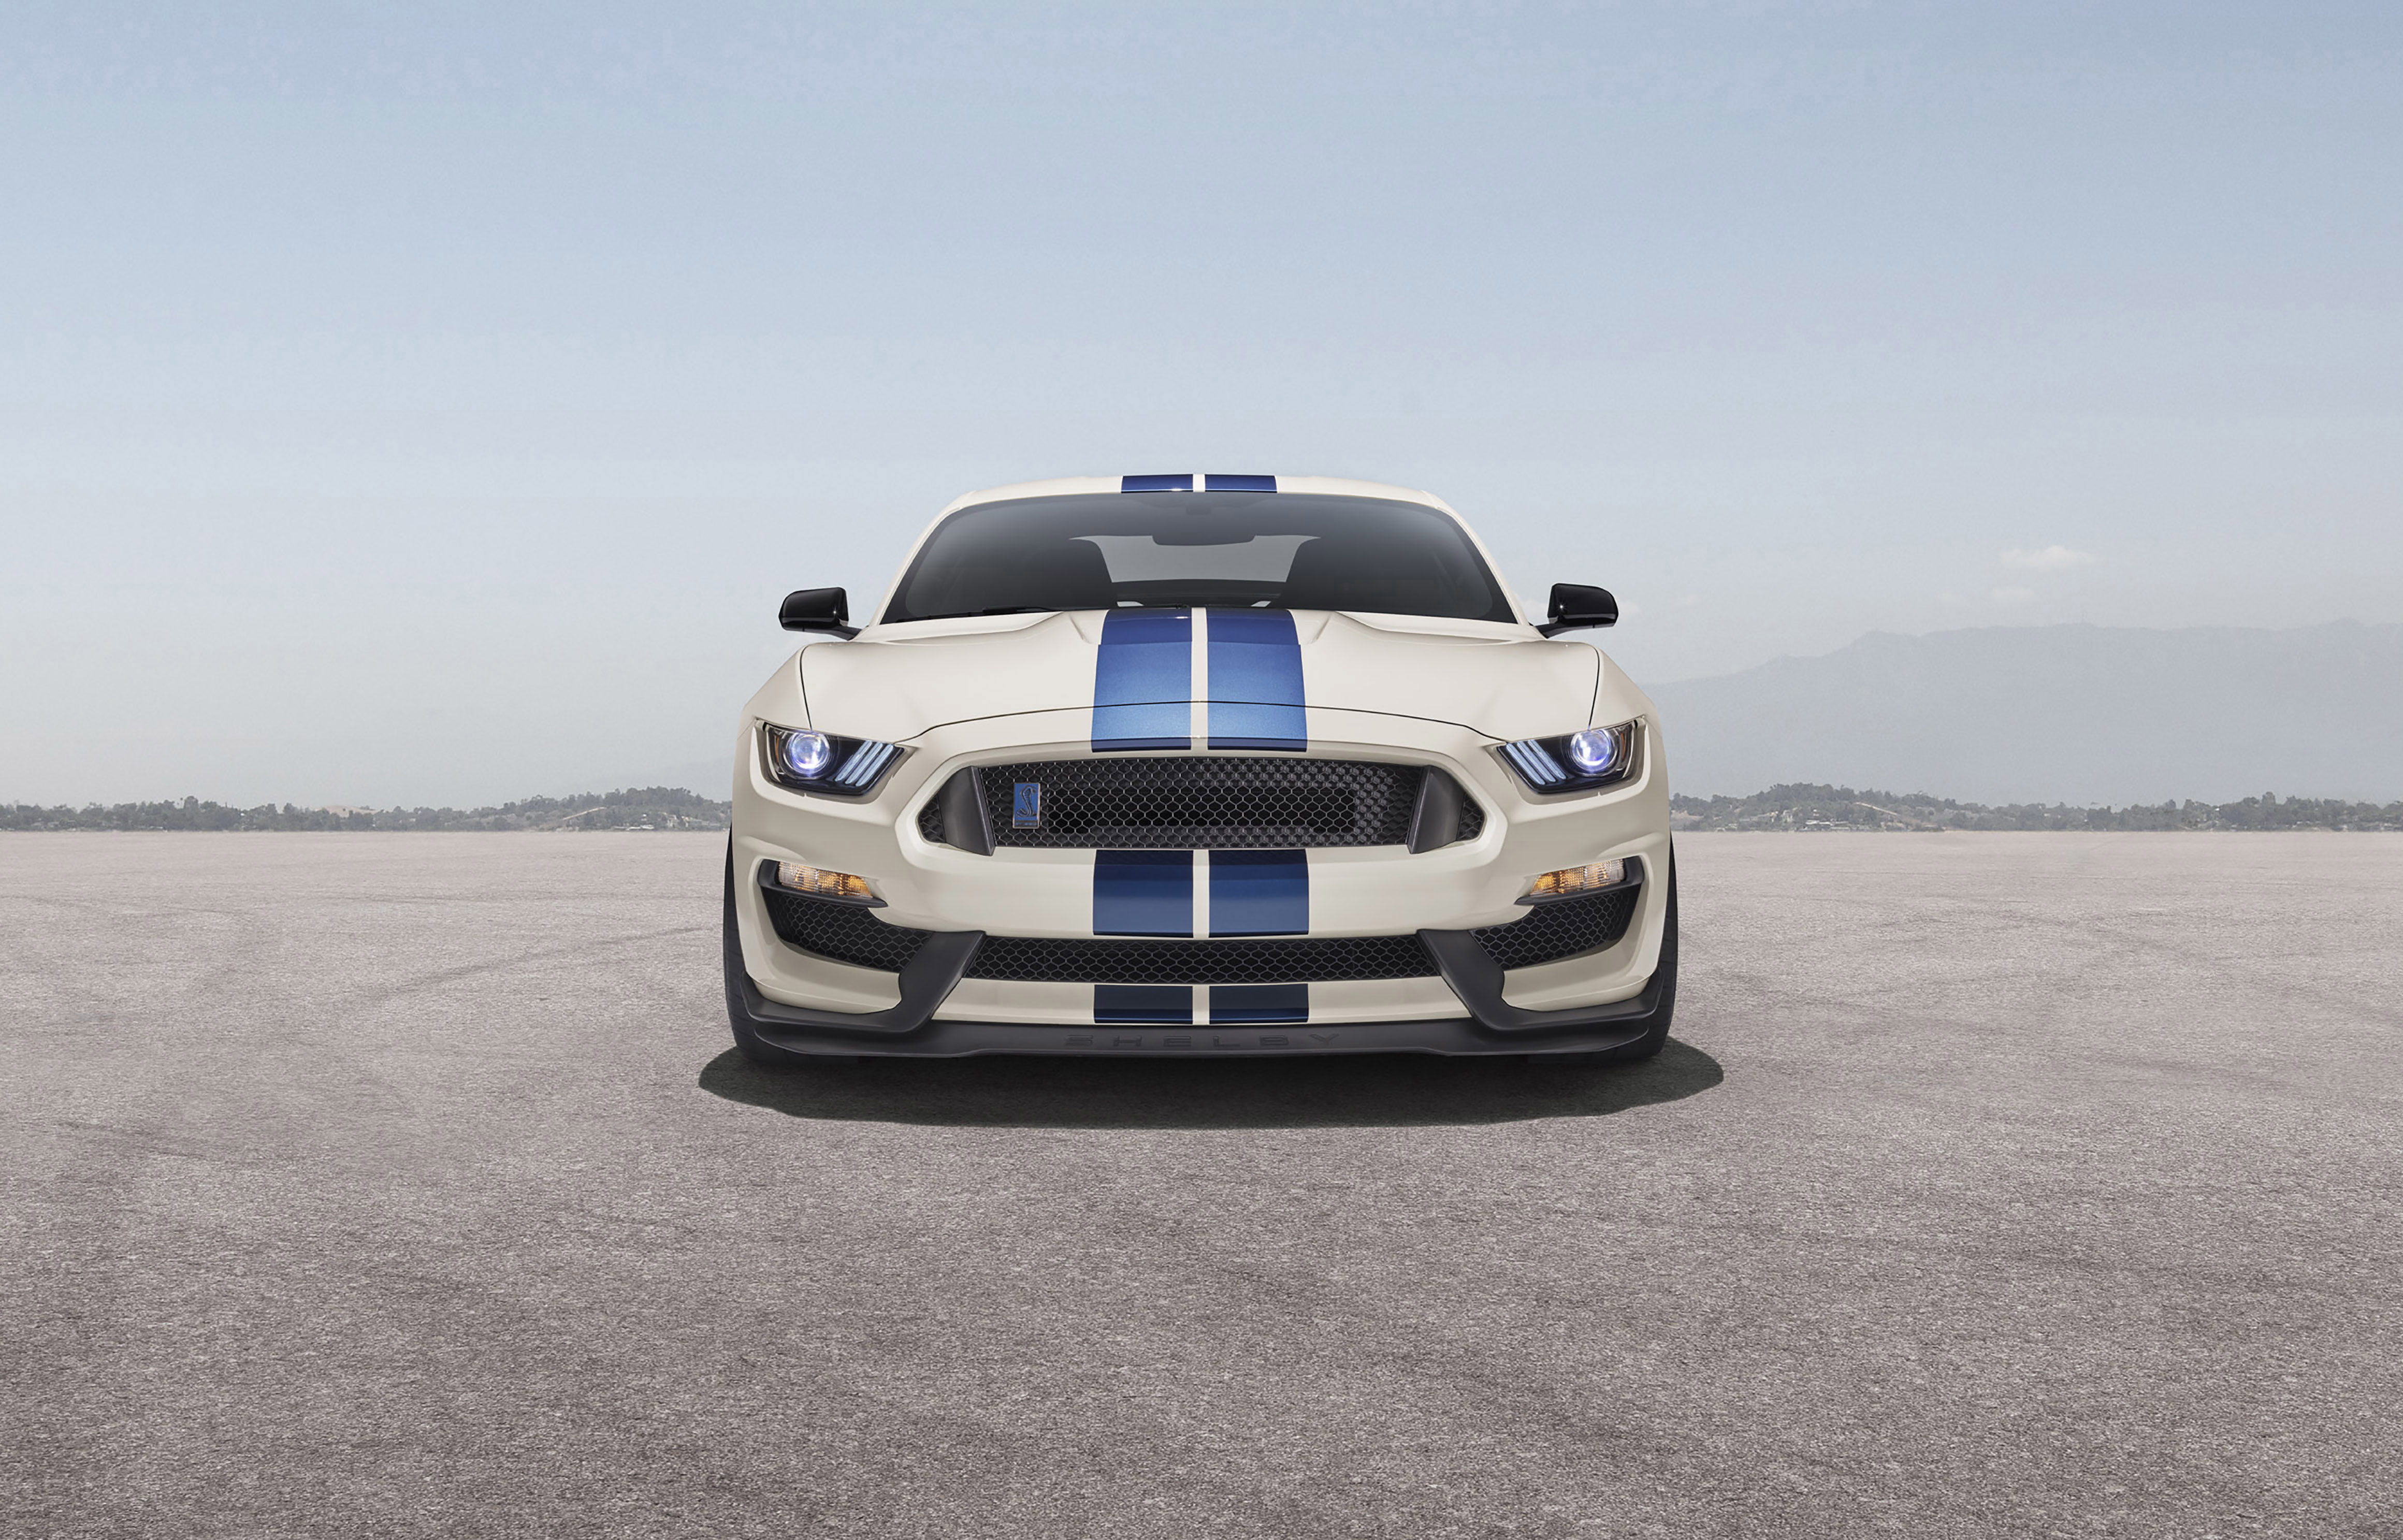 2560x1440 Ford Mustang Shelby Gt350 1440p Resolution Wallpaper Hd Cars 4k Wallpapers Images Photos And Background Wallpapers Den